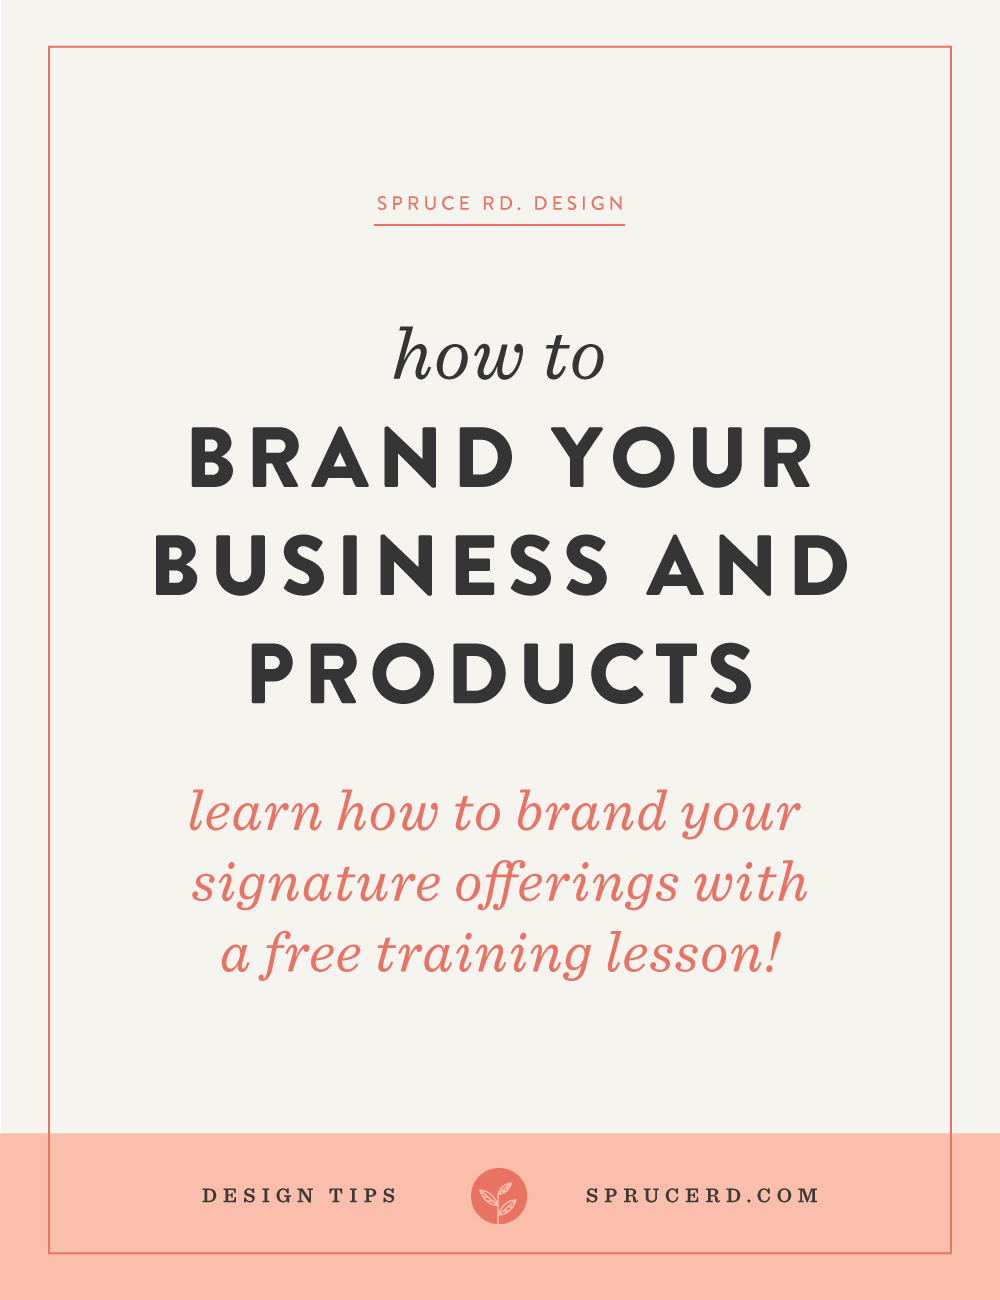 How to brand your business + flagship products, Spruce Rd. | Once you are ready to transition your personal brand (whether it be a service-based income, blog, consulting, or any other type of business) into info-products, you will most likely encounter some sort of branding quandary. Should you separate your primary brand from your products? In this article we'll touch on how I've managed my brand + sub-brands.